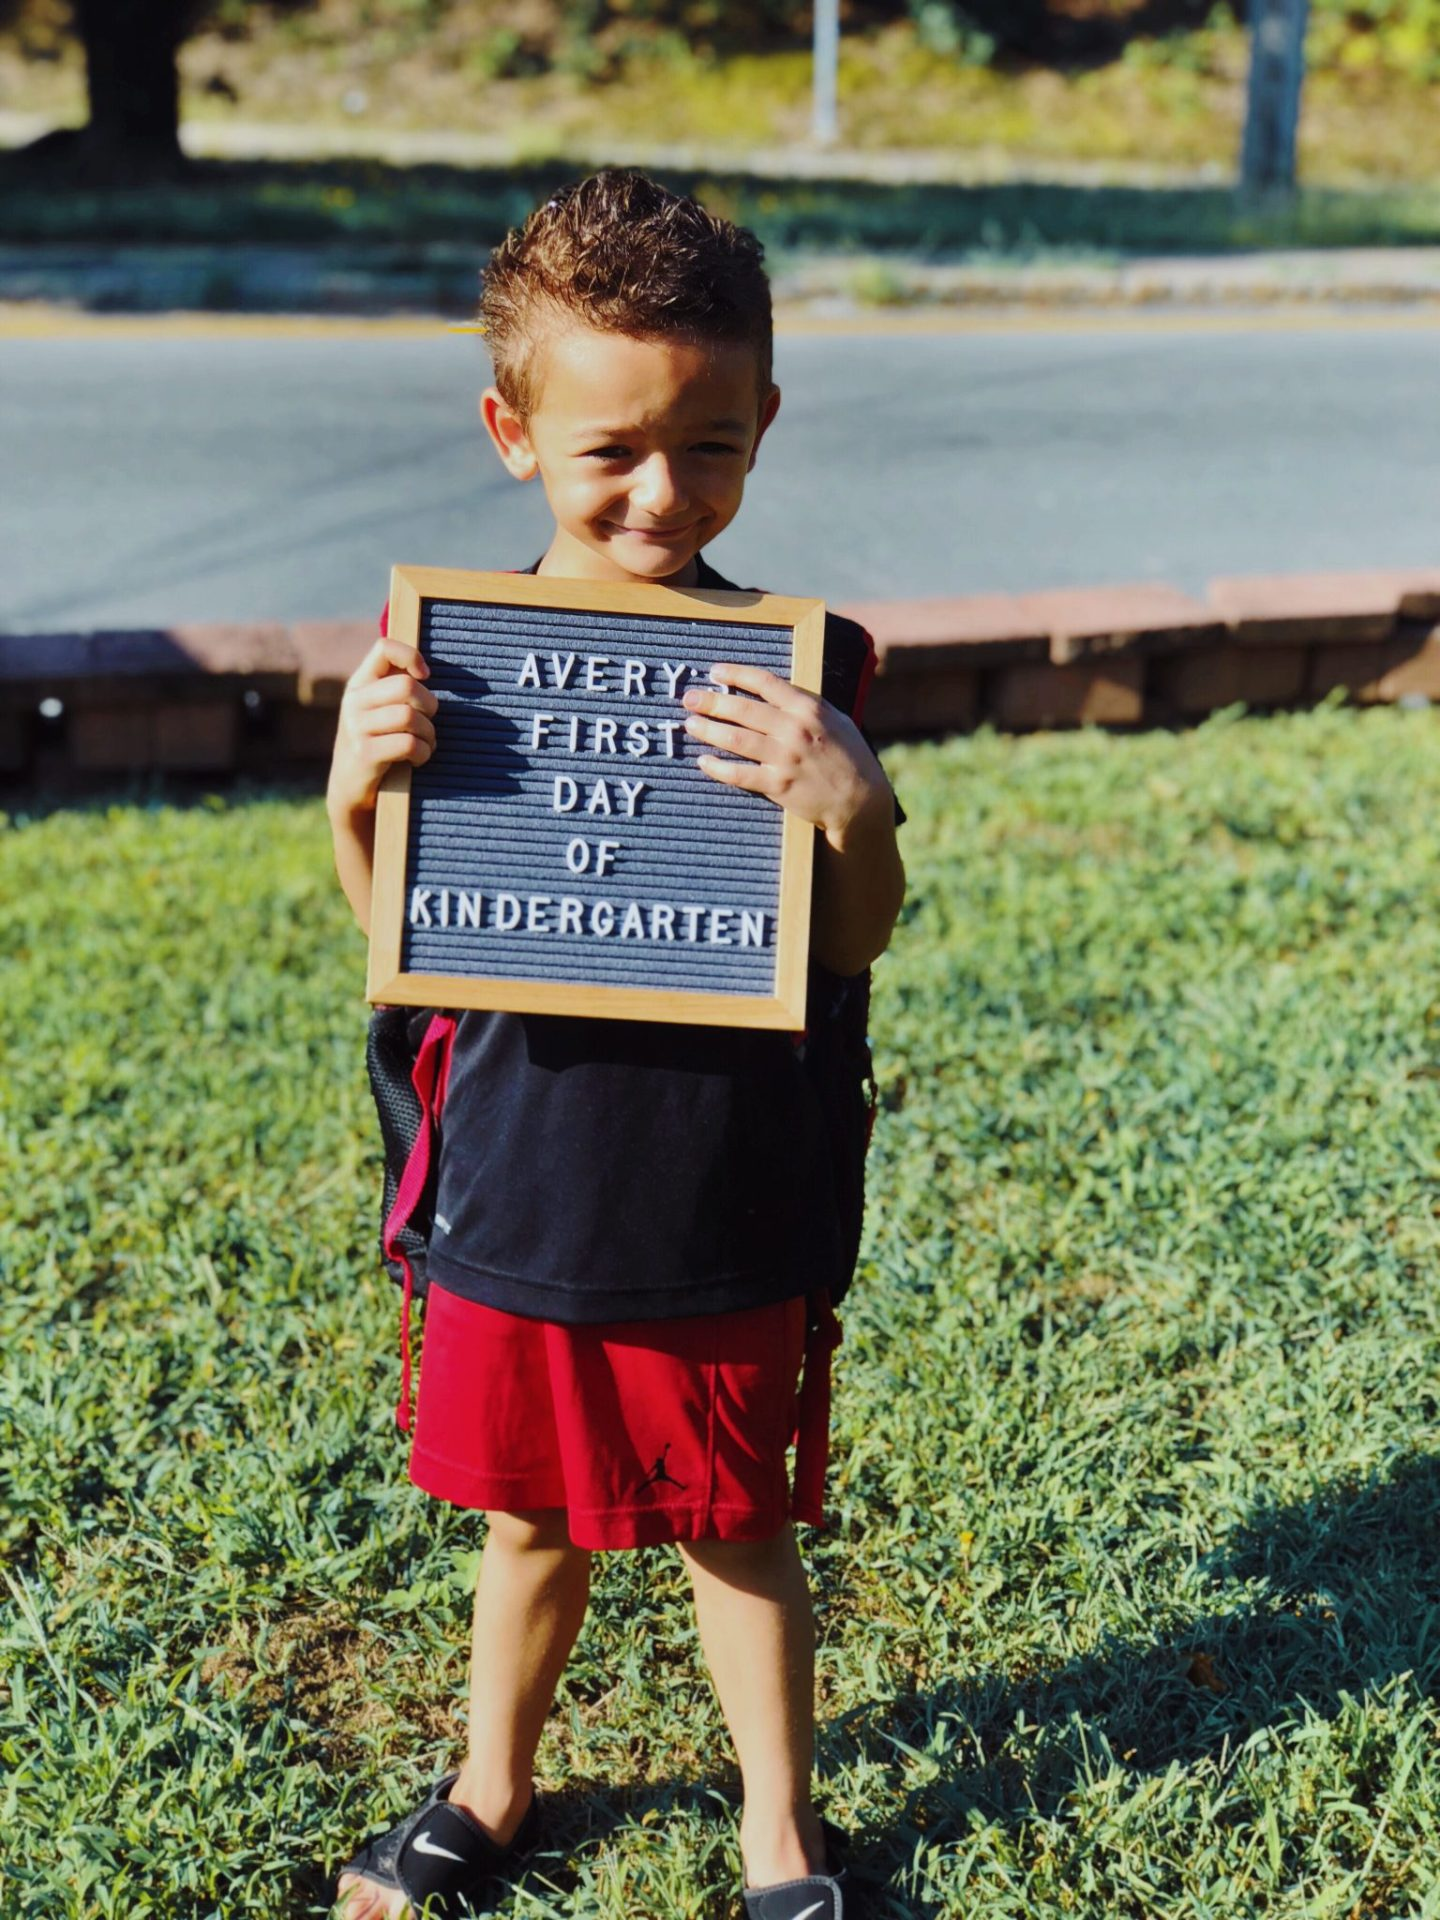 First Day Of Kindergarten Letterboard